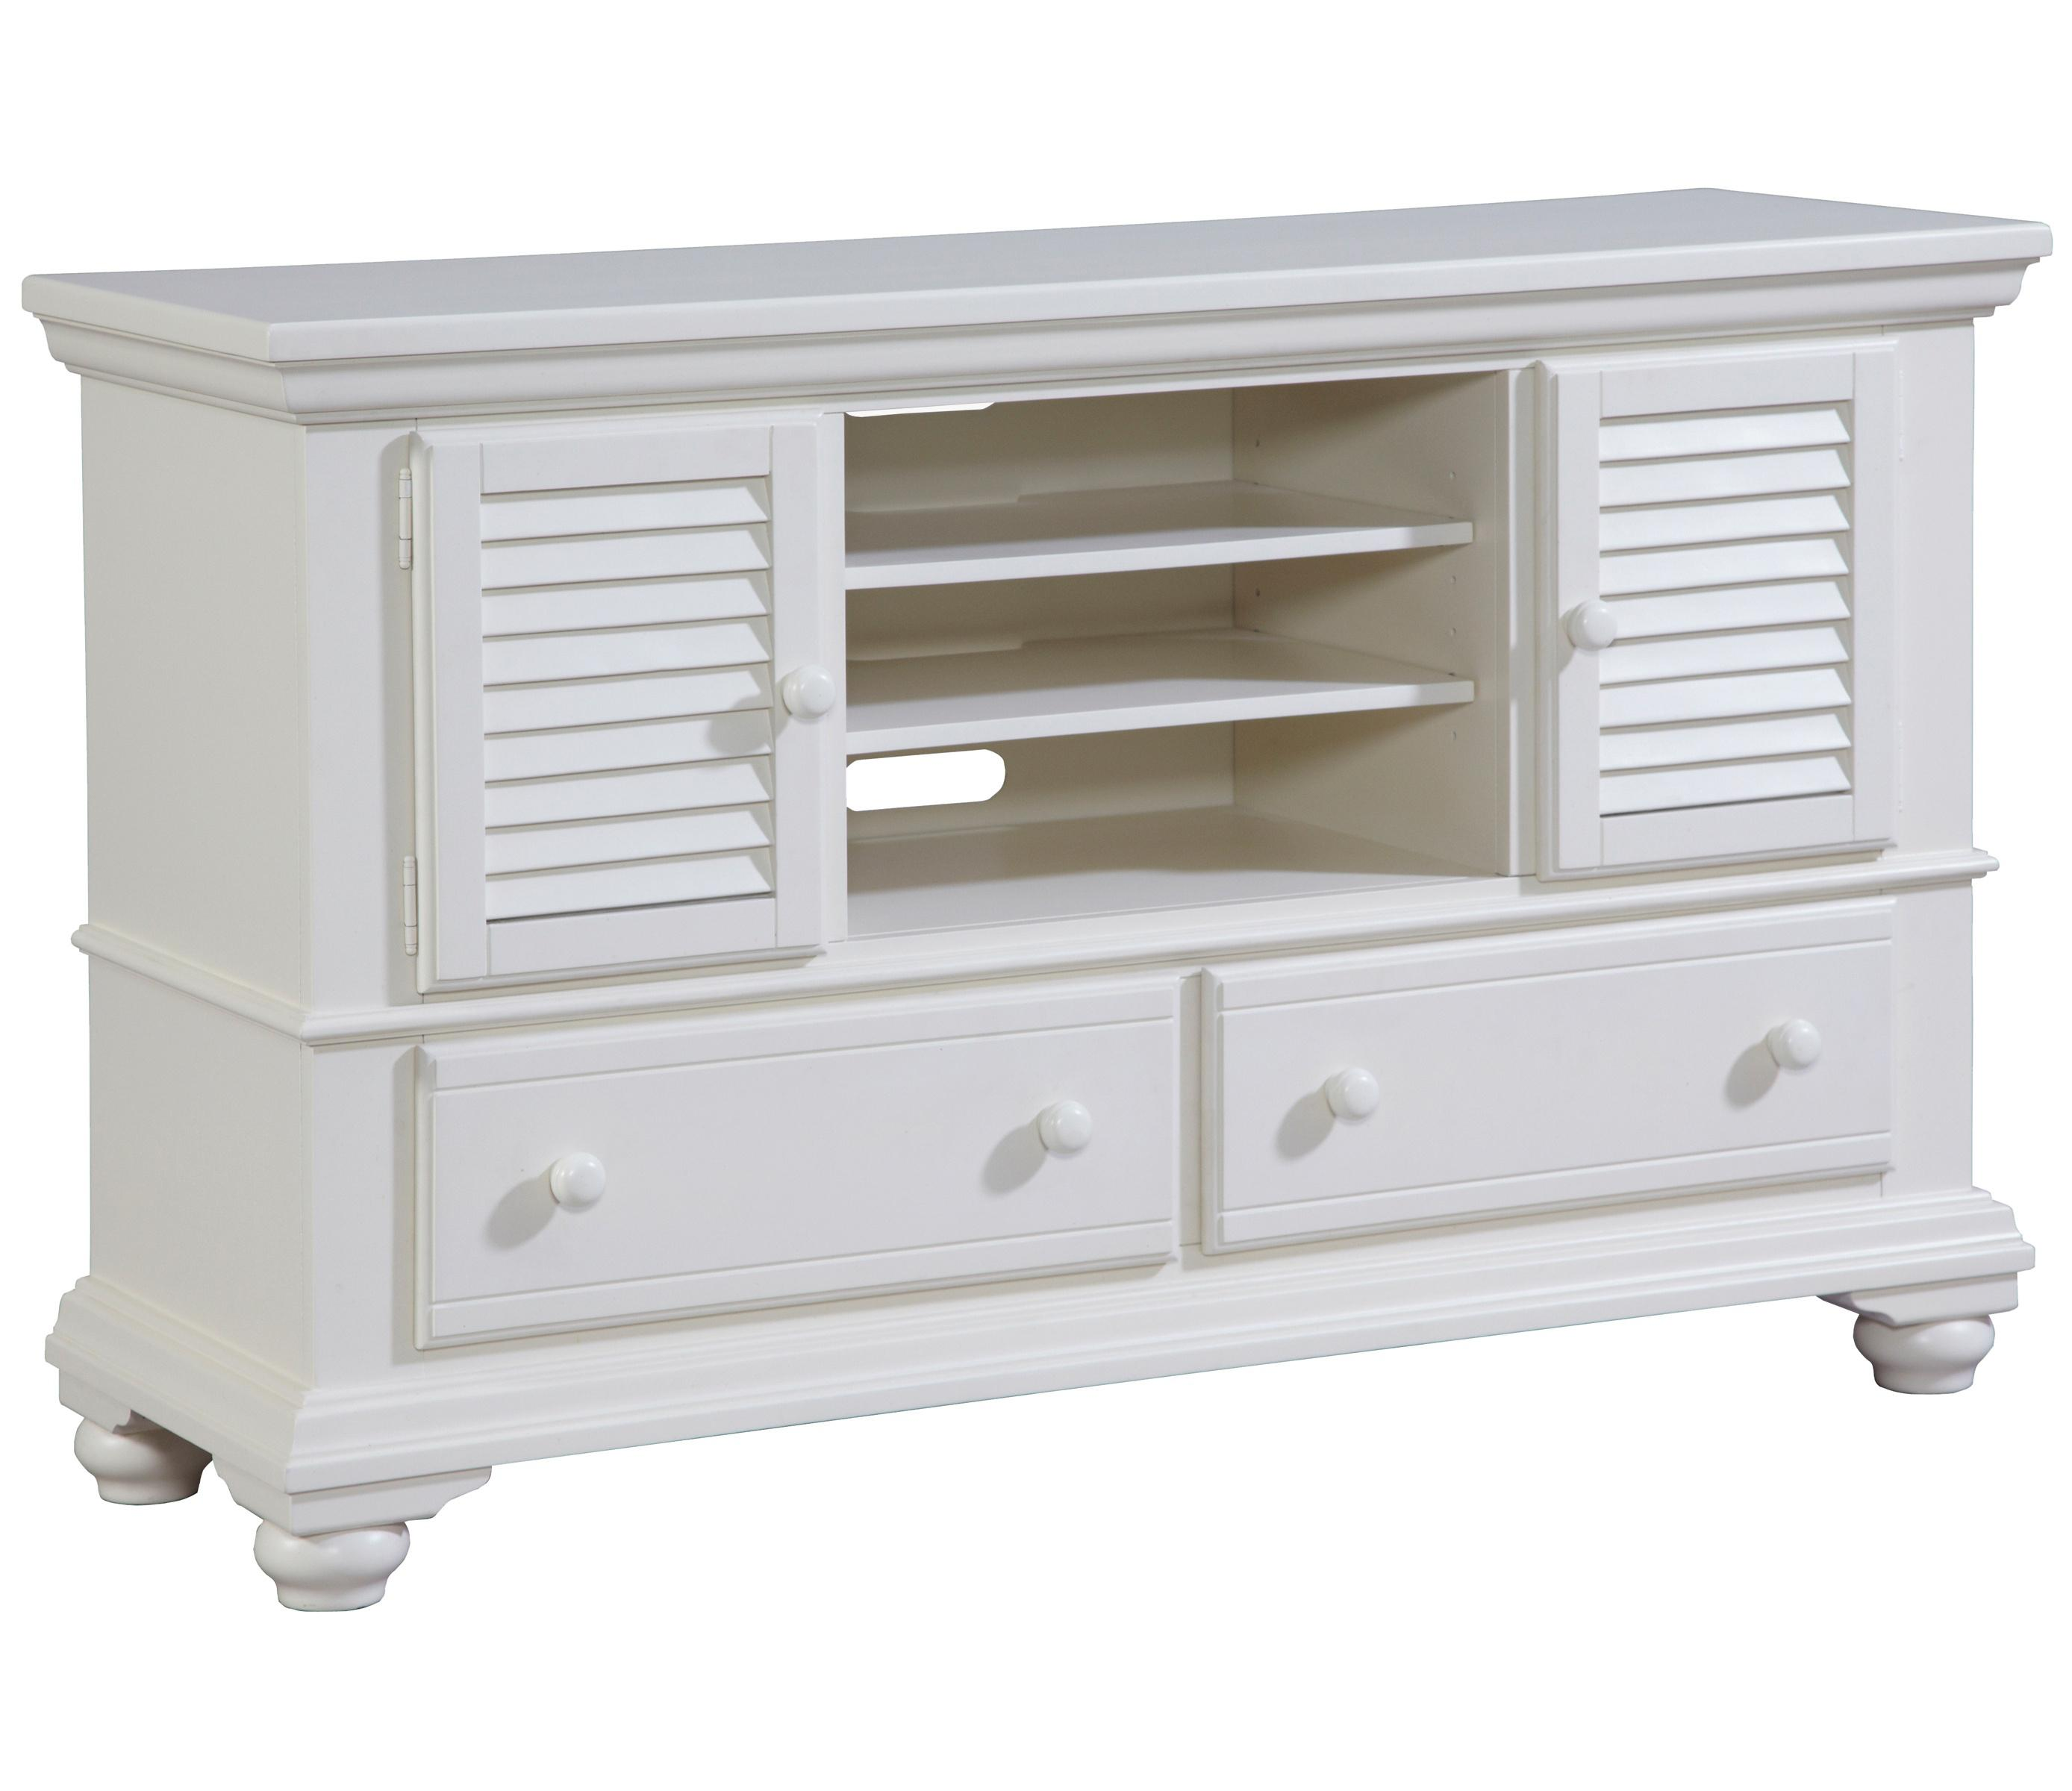 Seabrooke 2 Door Entertainment Console with Shutter Detail by Broyhill  Furniture at Baer\'s Furniture